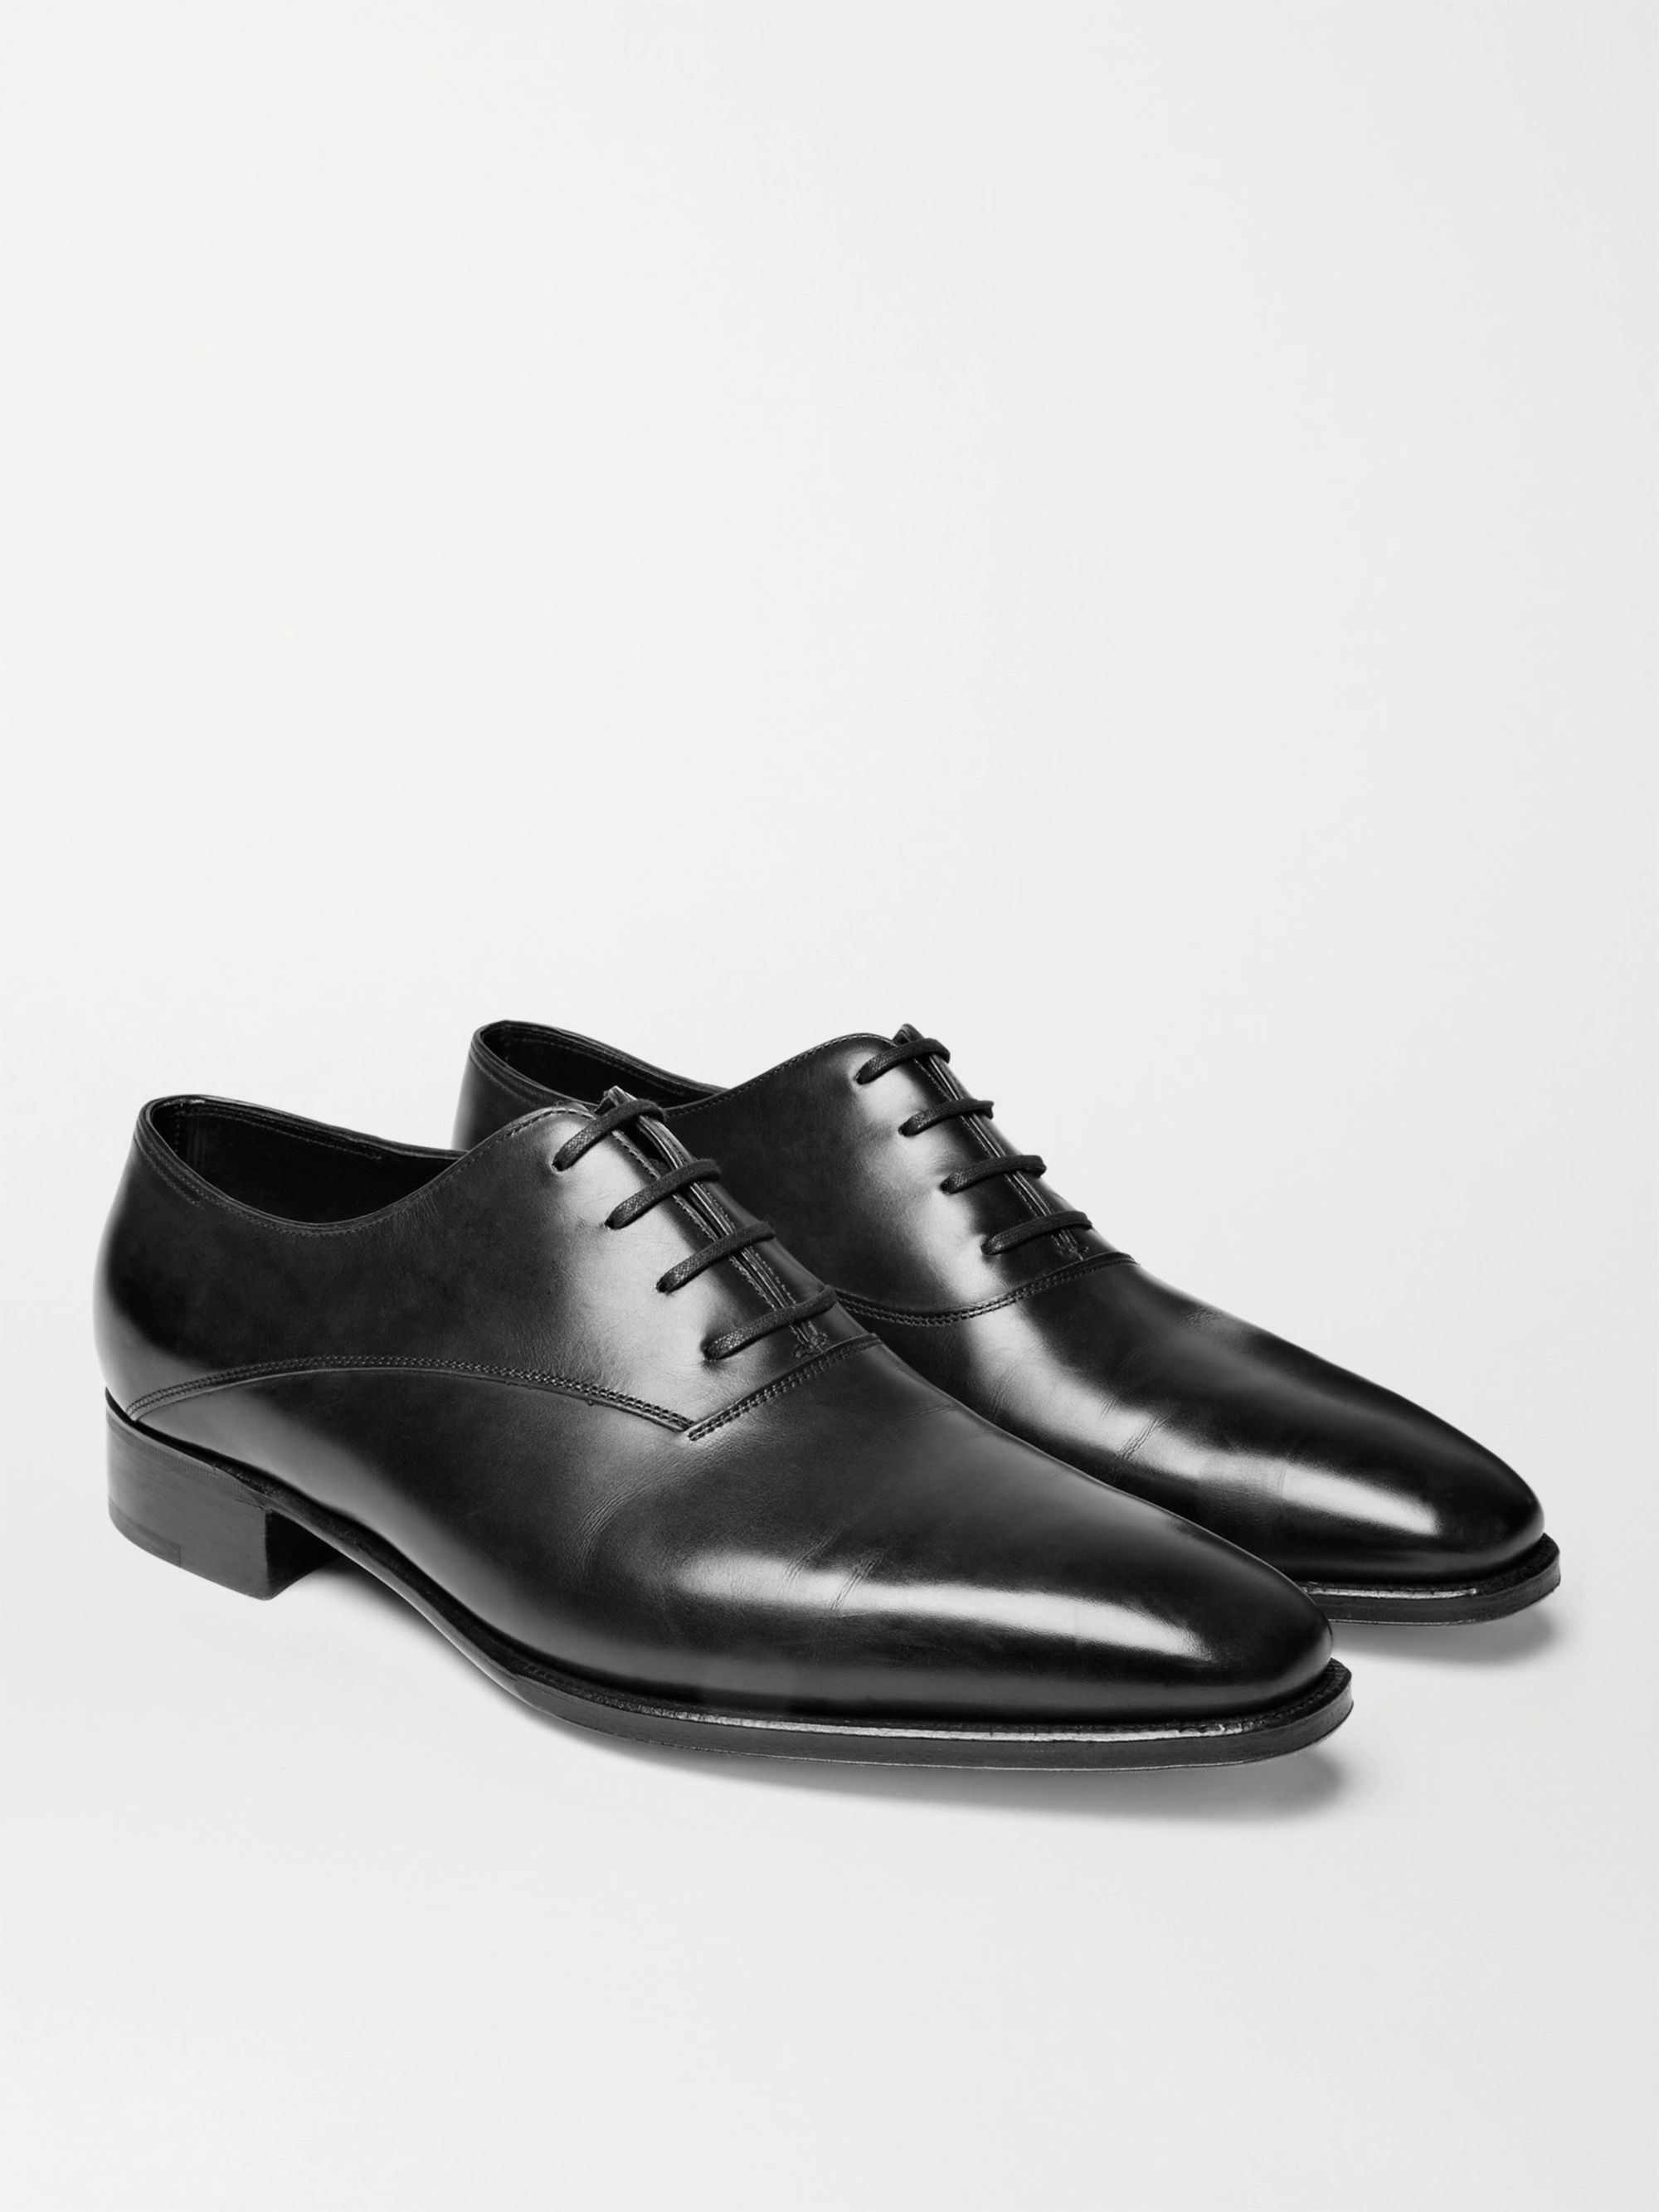 John Lobb Prestige Becketts Leather Oxford Shoes